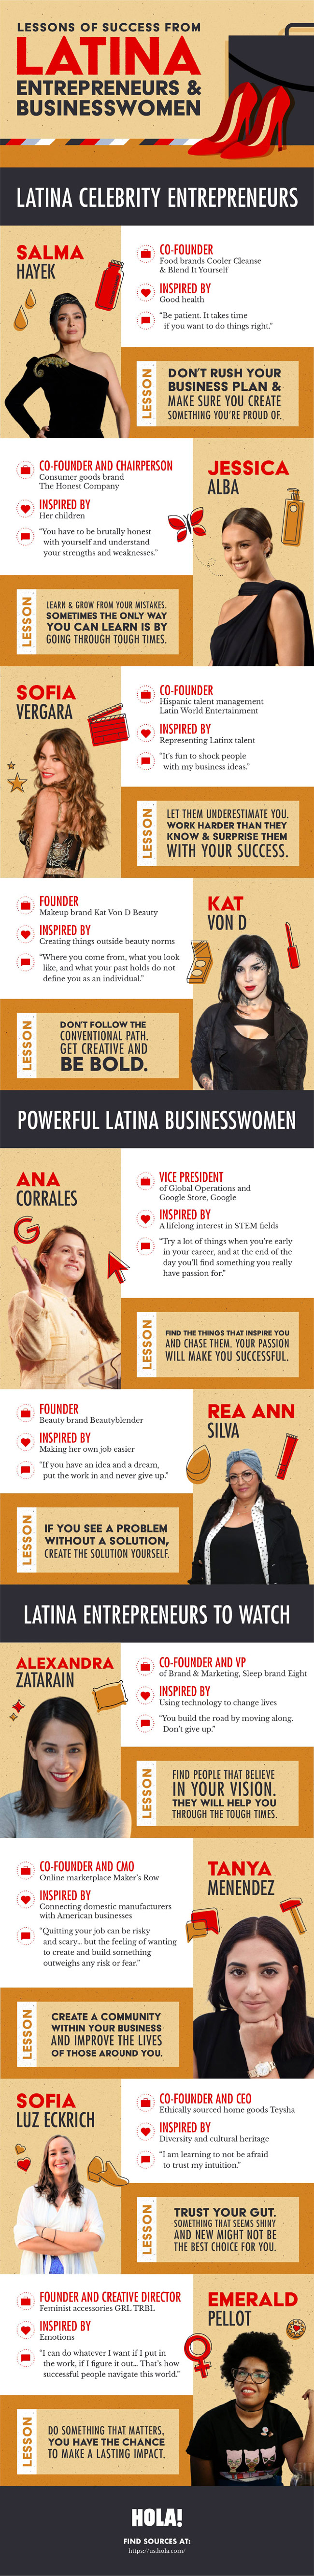 Lessons of Success from Latina Entrepreneurs & Businesswomen - Infographic